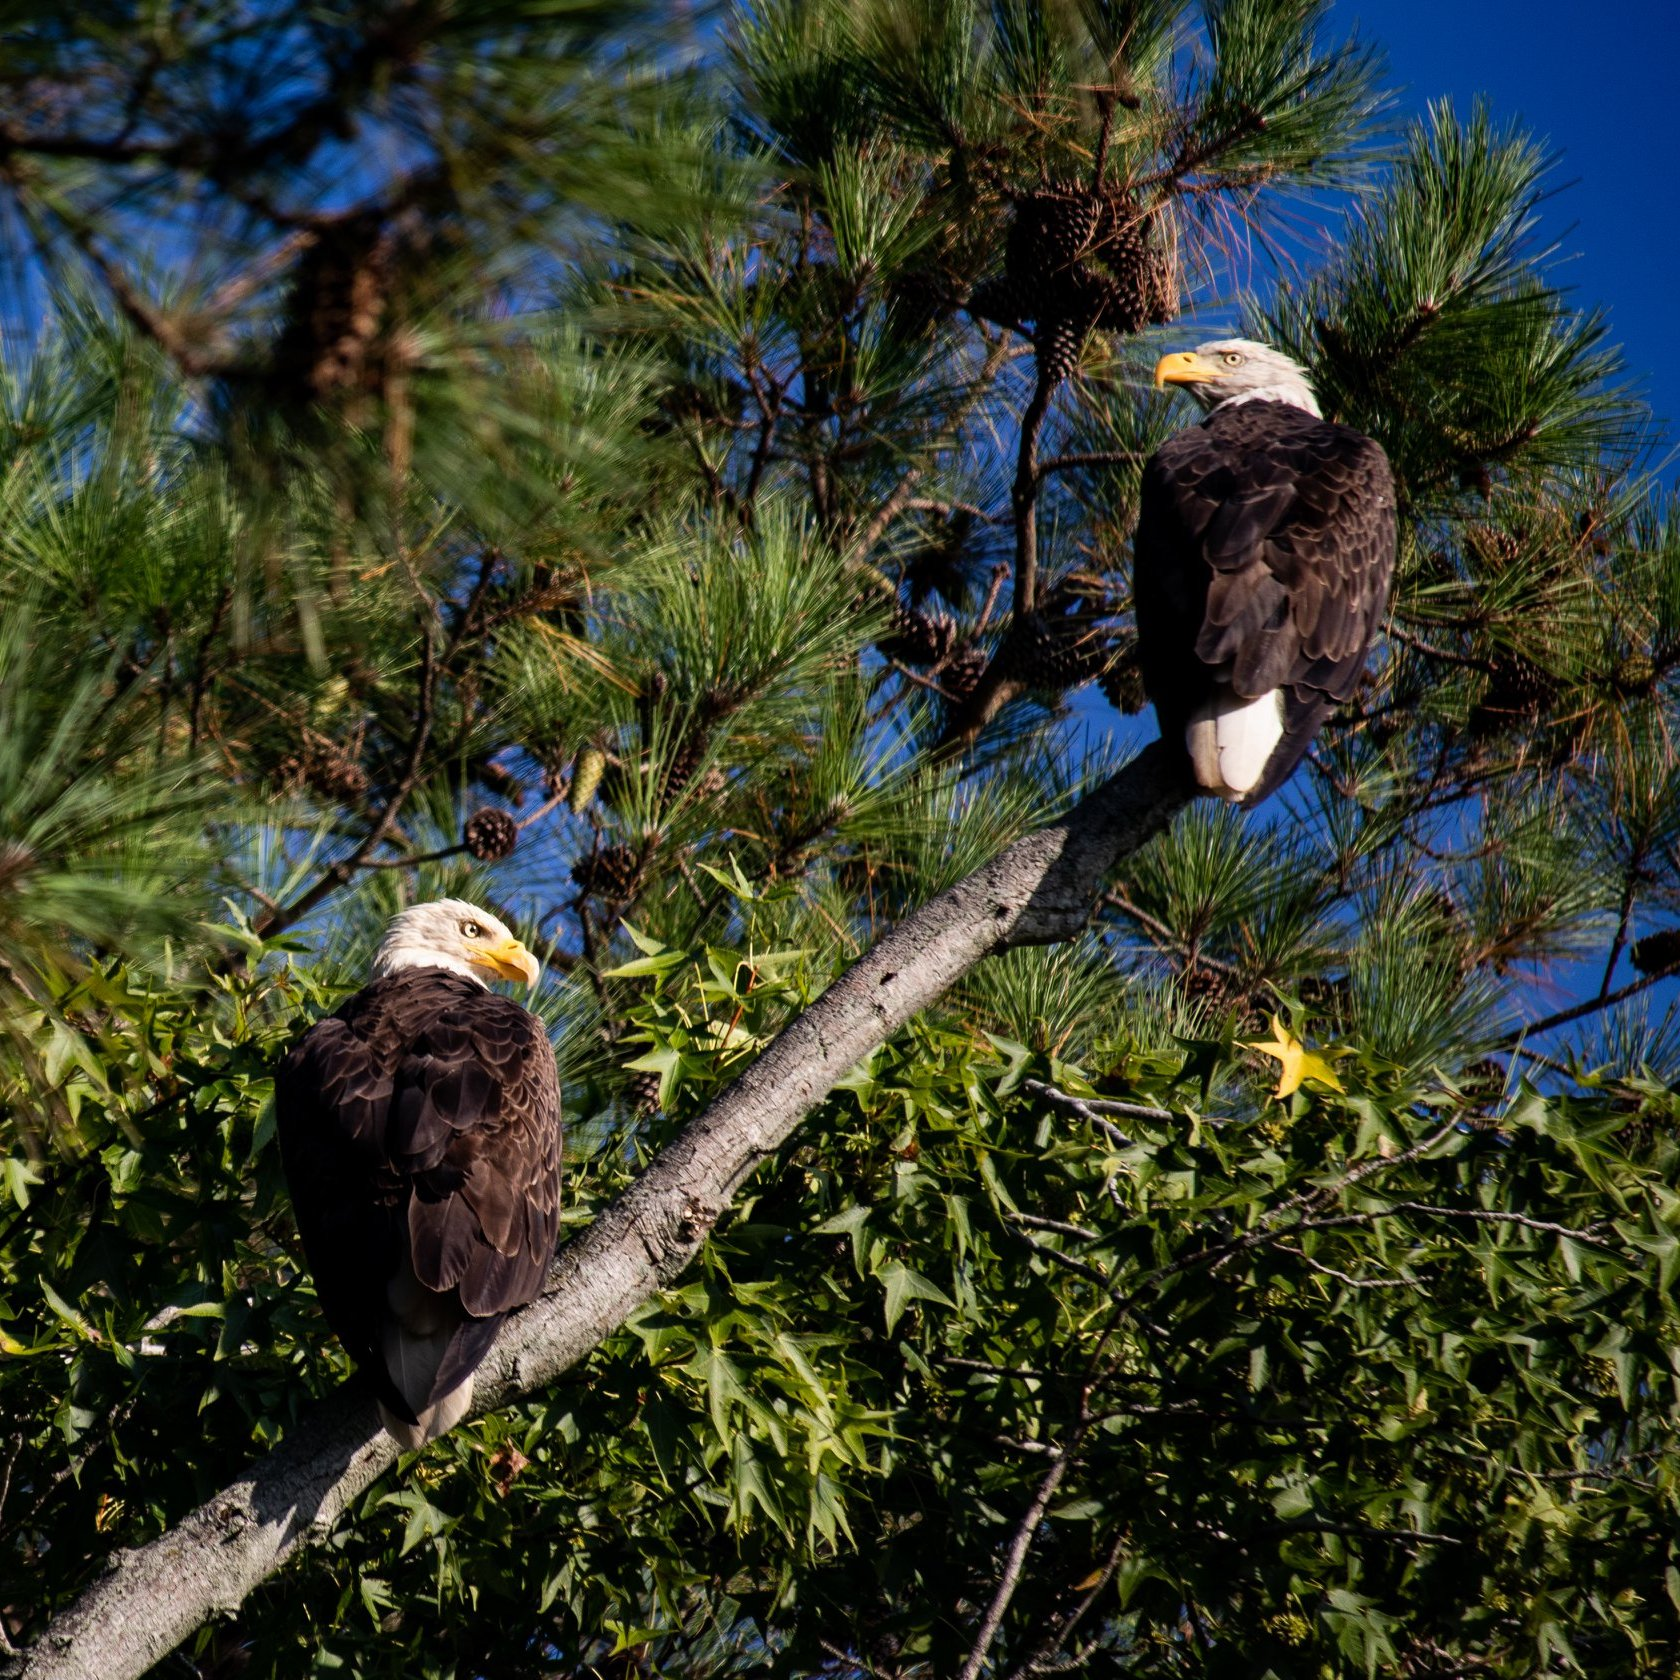 Two Bald Eagles sitting on a diagonally branch of a tree going up. One Bald Eagle is lower on the branch looking right. The other is higher up looking left. Background is green tree with a blue sky.